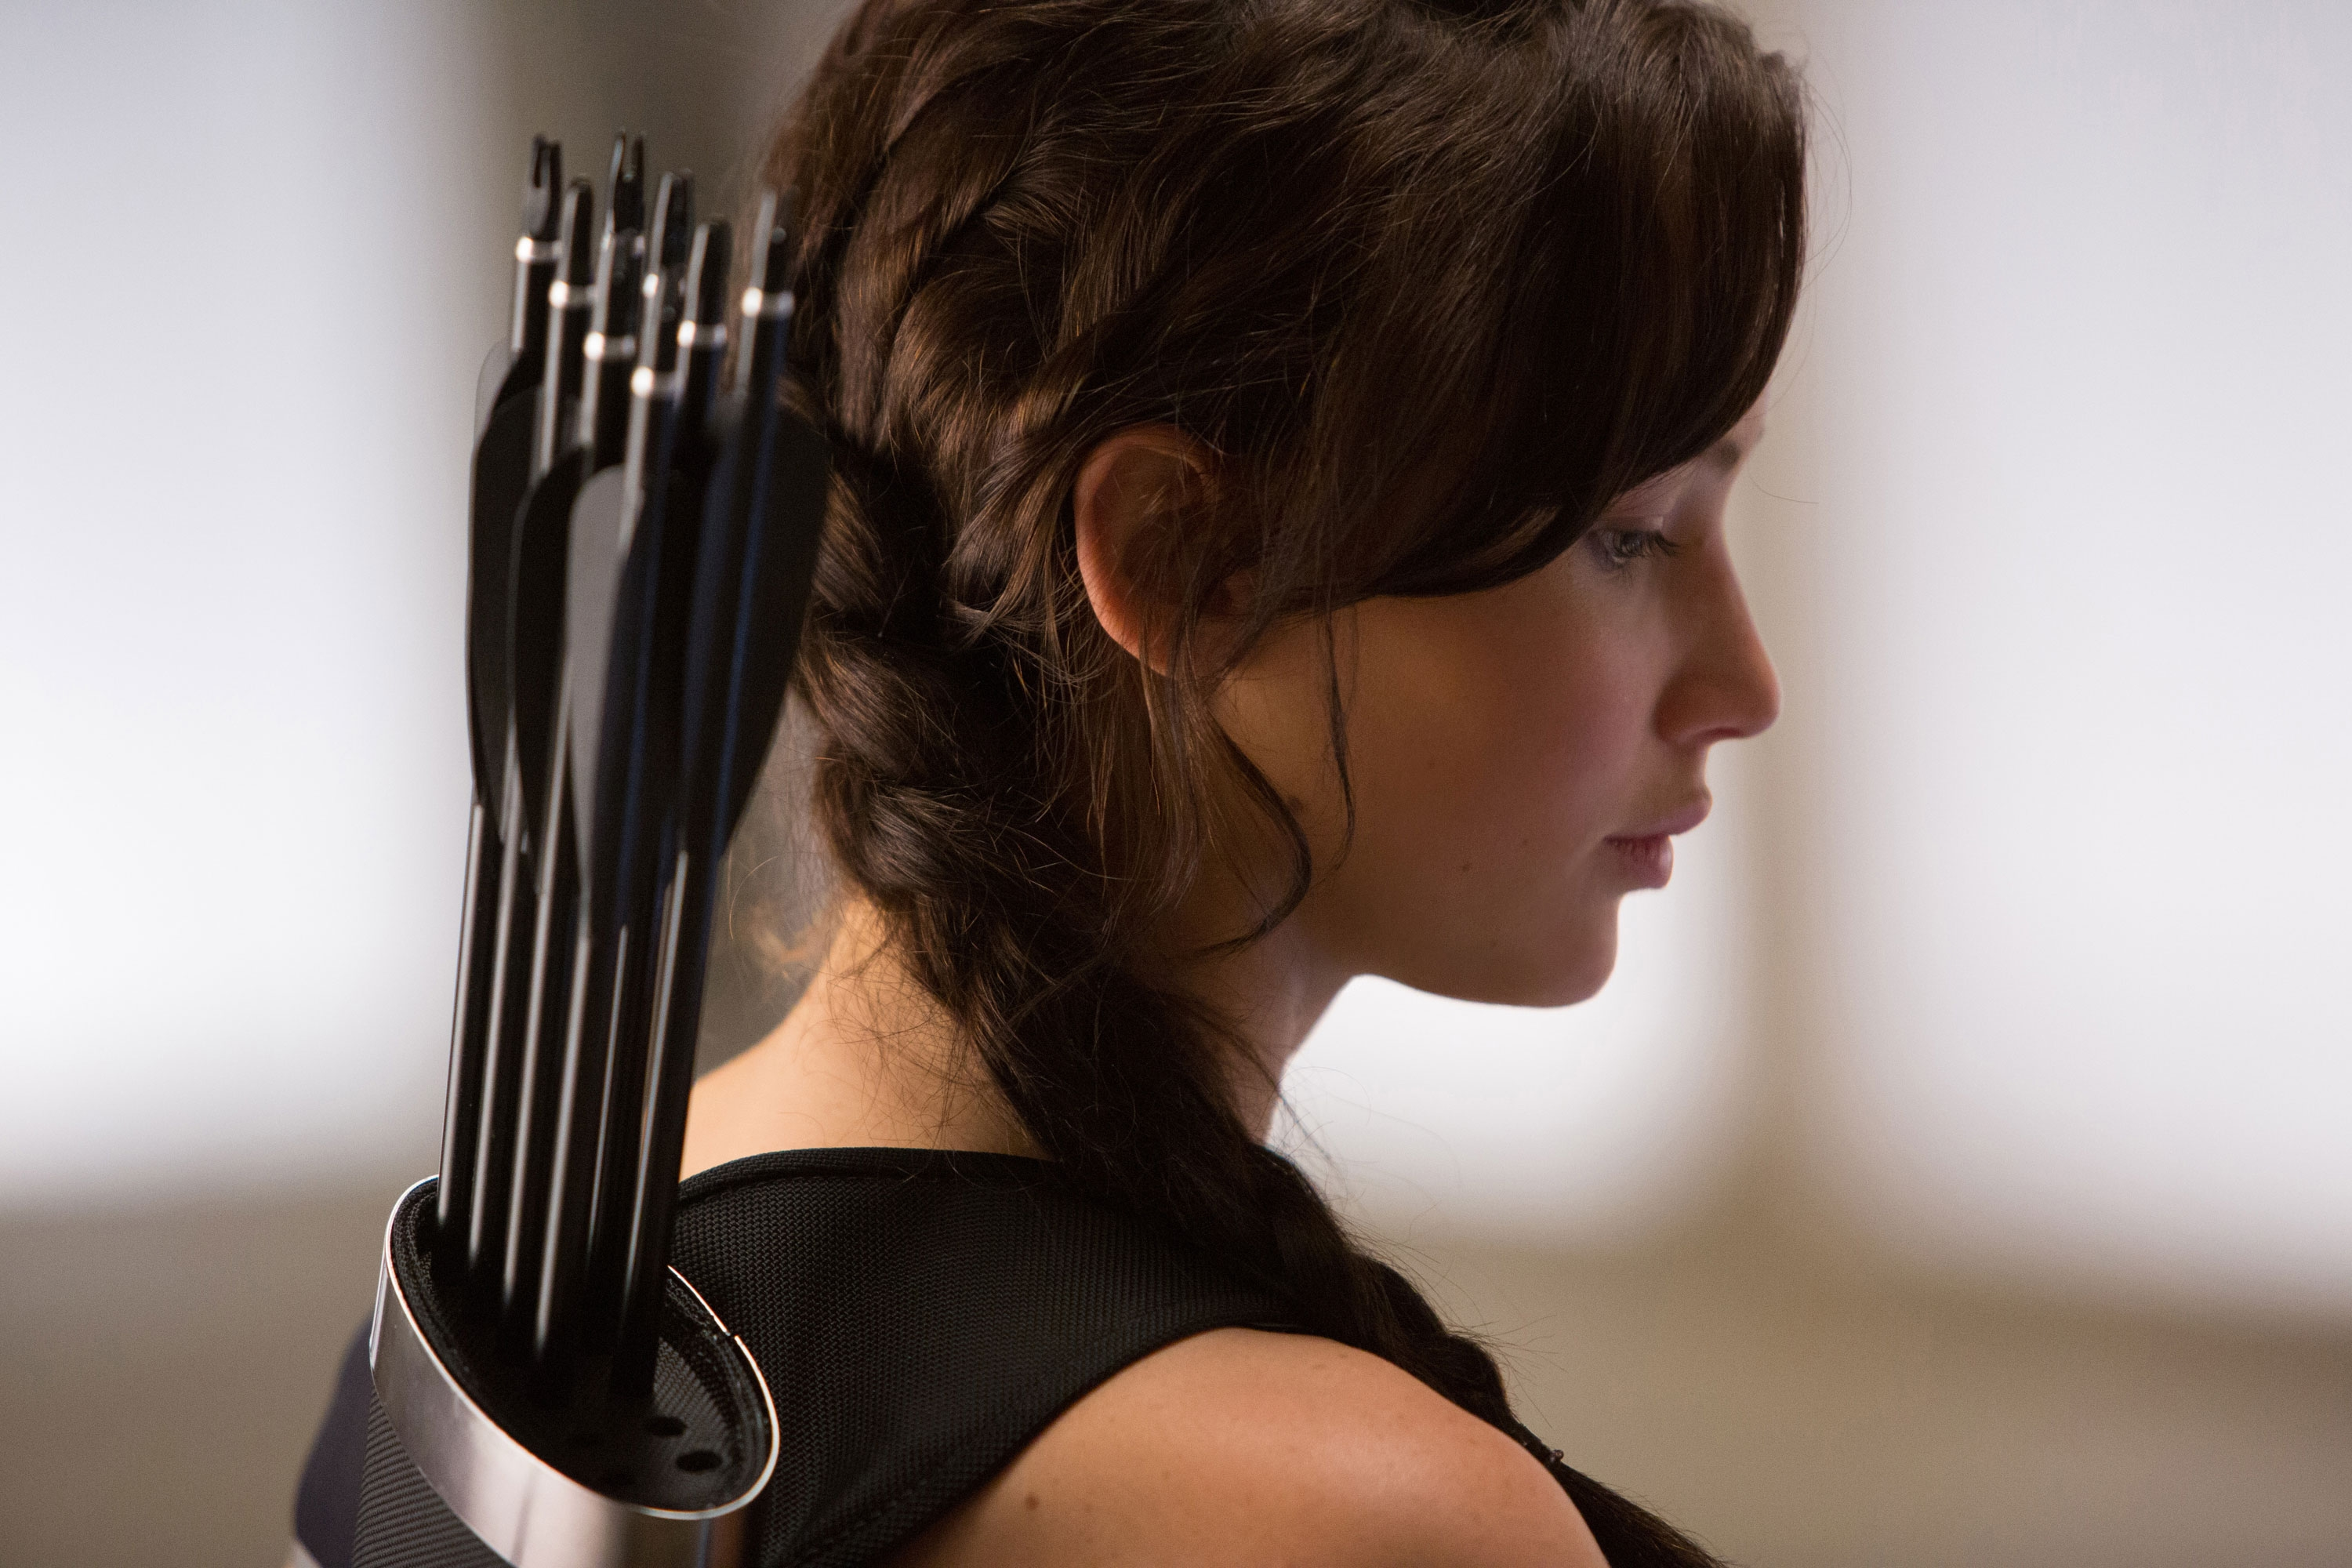 'The Hunger Games' Becomes First Female-Led #1 Film Since 'The Exorcist' – /Film